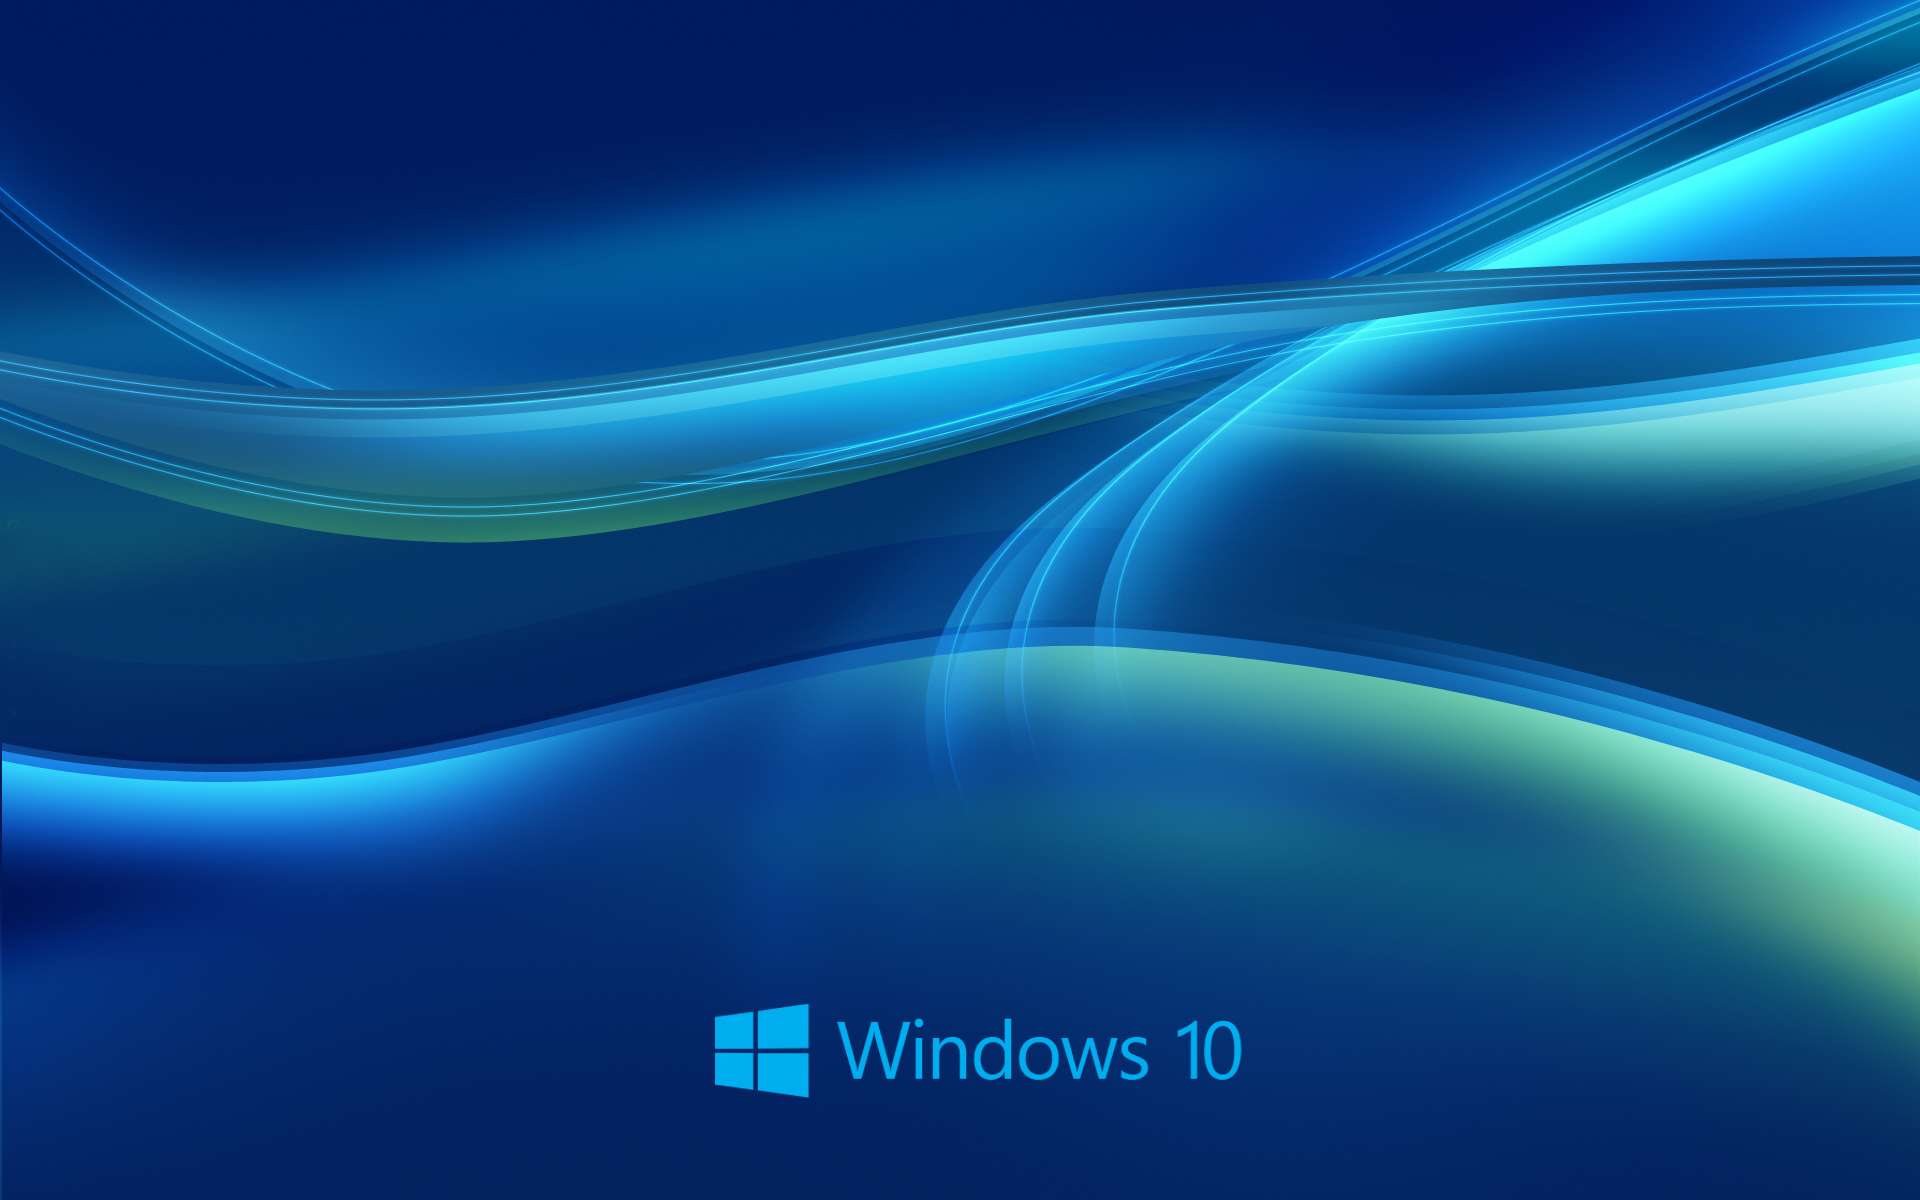 windows 8.1 wallpaper hd free download